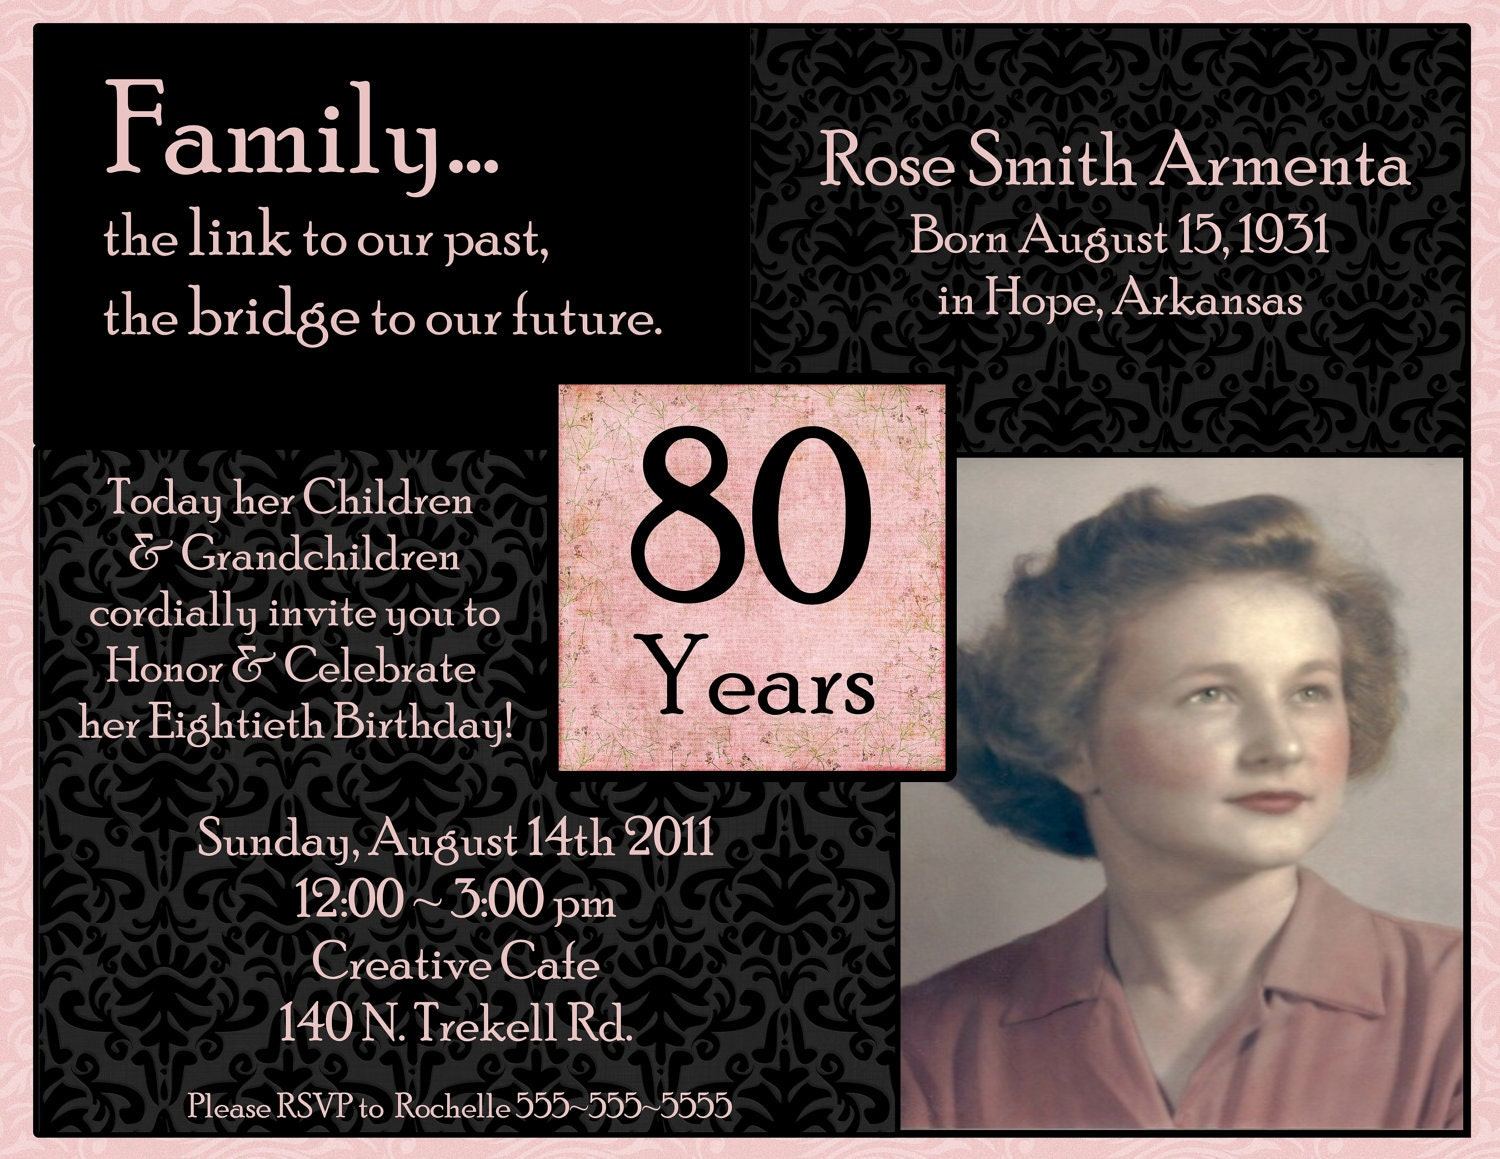 80Th Birthday Invitation Wording is an amazing ideas you had to choose for invitation design